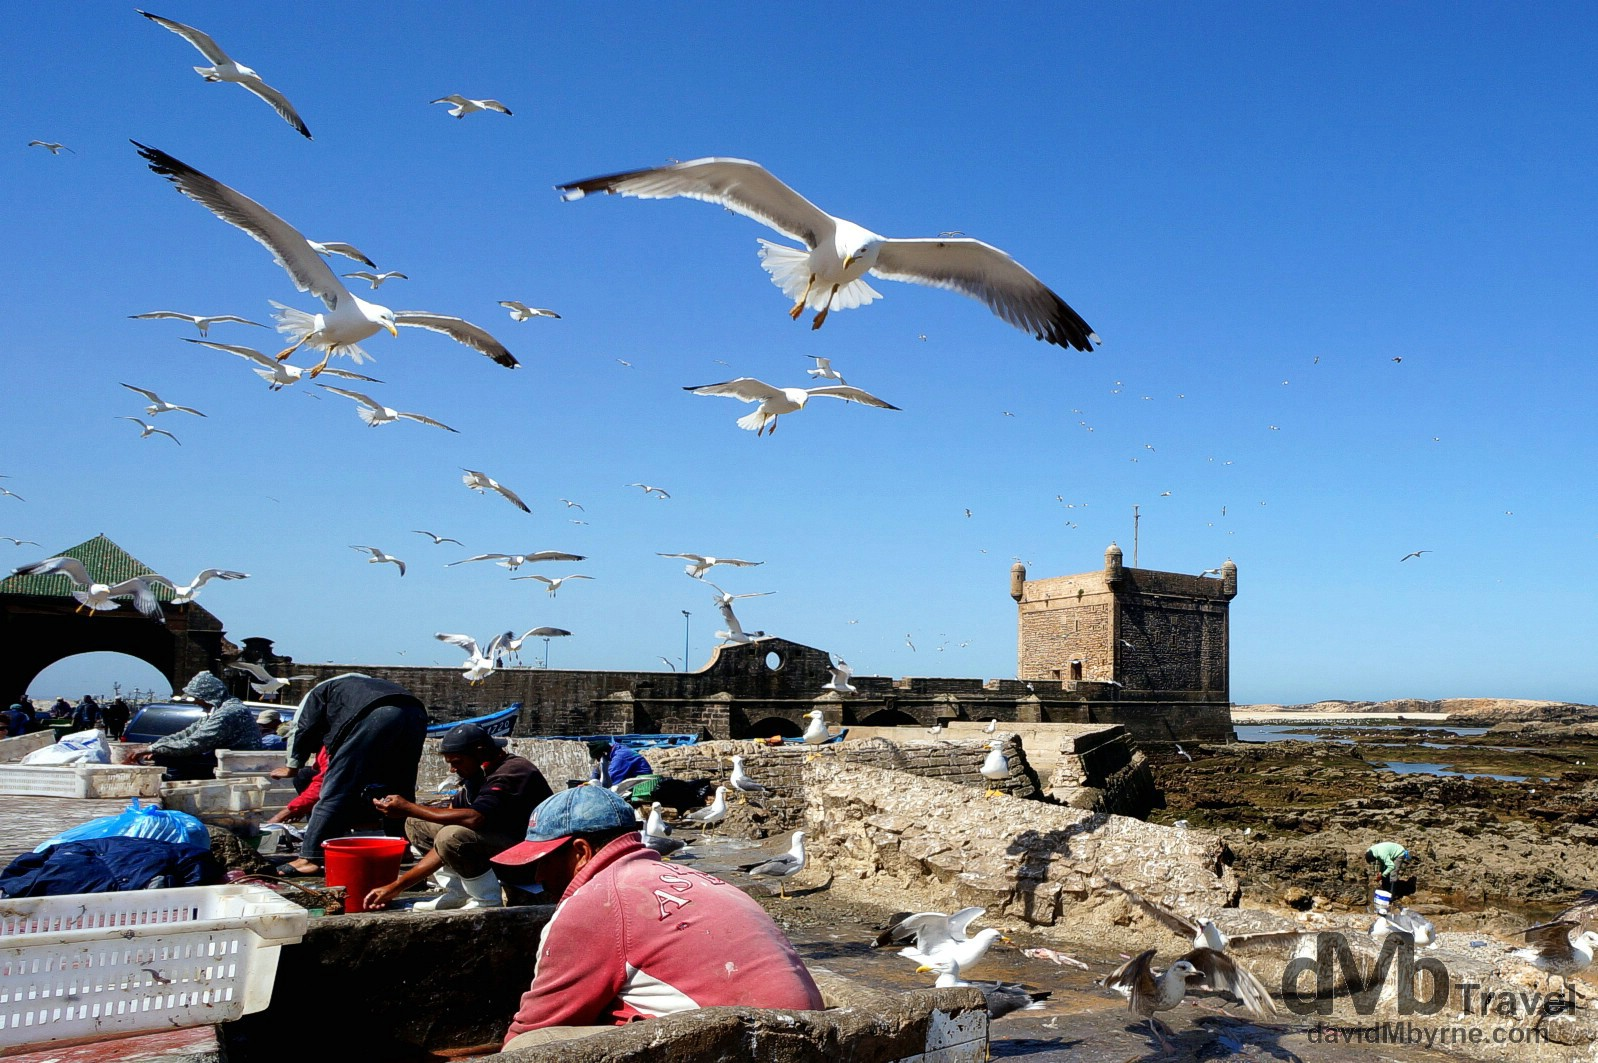 Essaouira Morocco  city photo : Essaouira, Morocco | Worldwide Destination Photography & Insights from ...